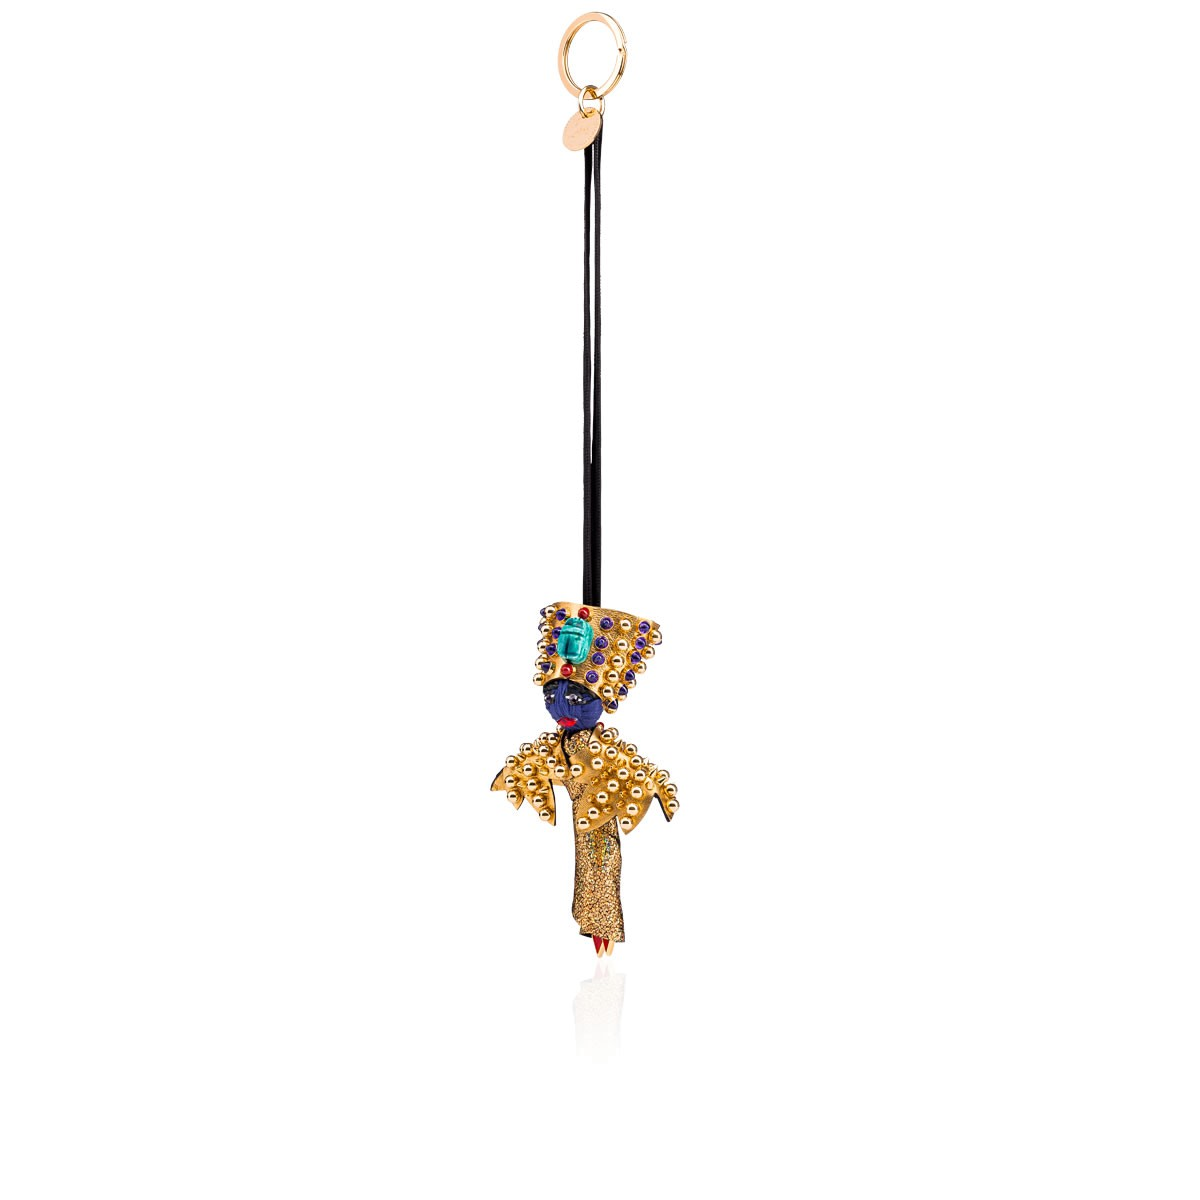 スモールレザーグッズ - Bag Charm Doll Nefertiti - Christian Louboutin